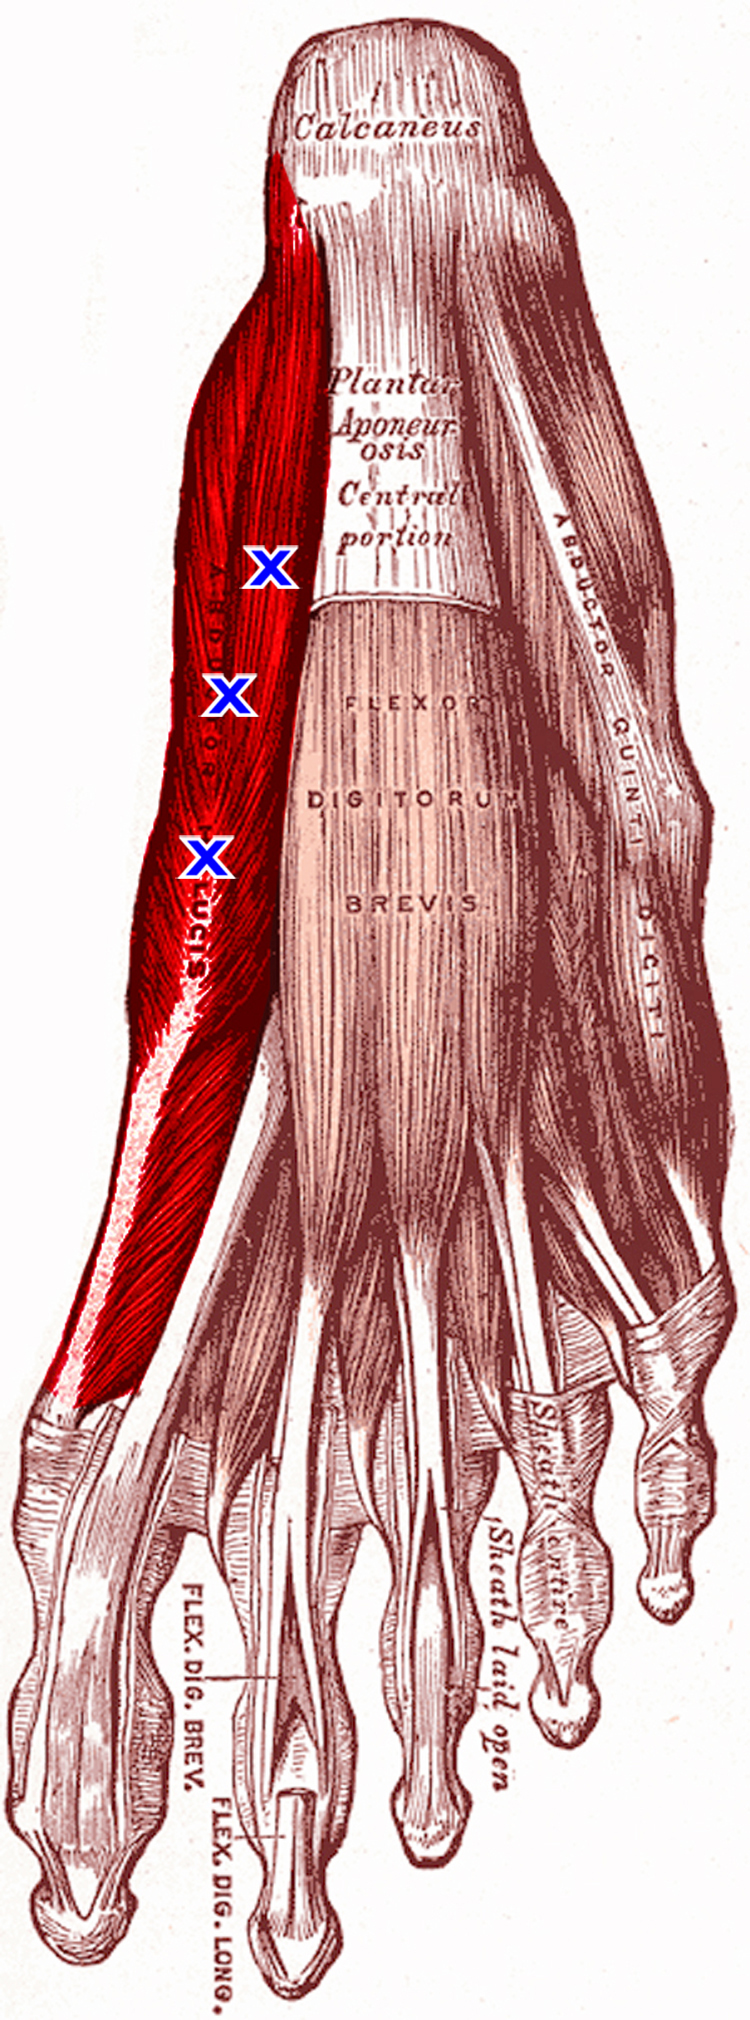 abductor hallucis muscle with TrP.jpg